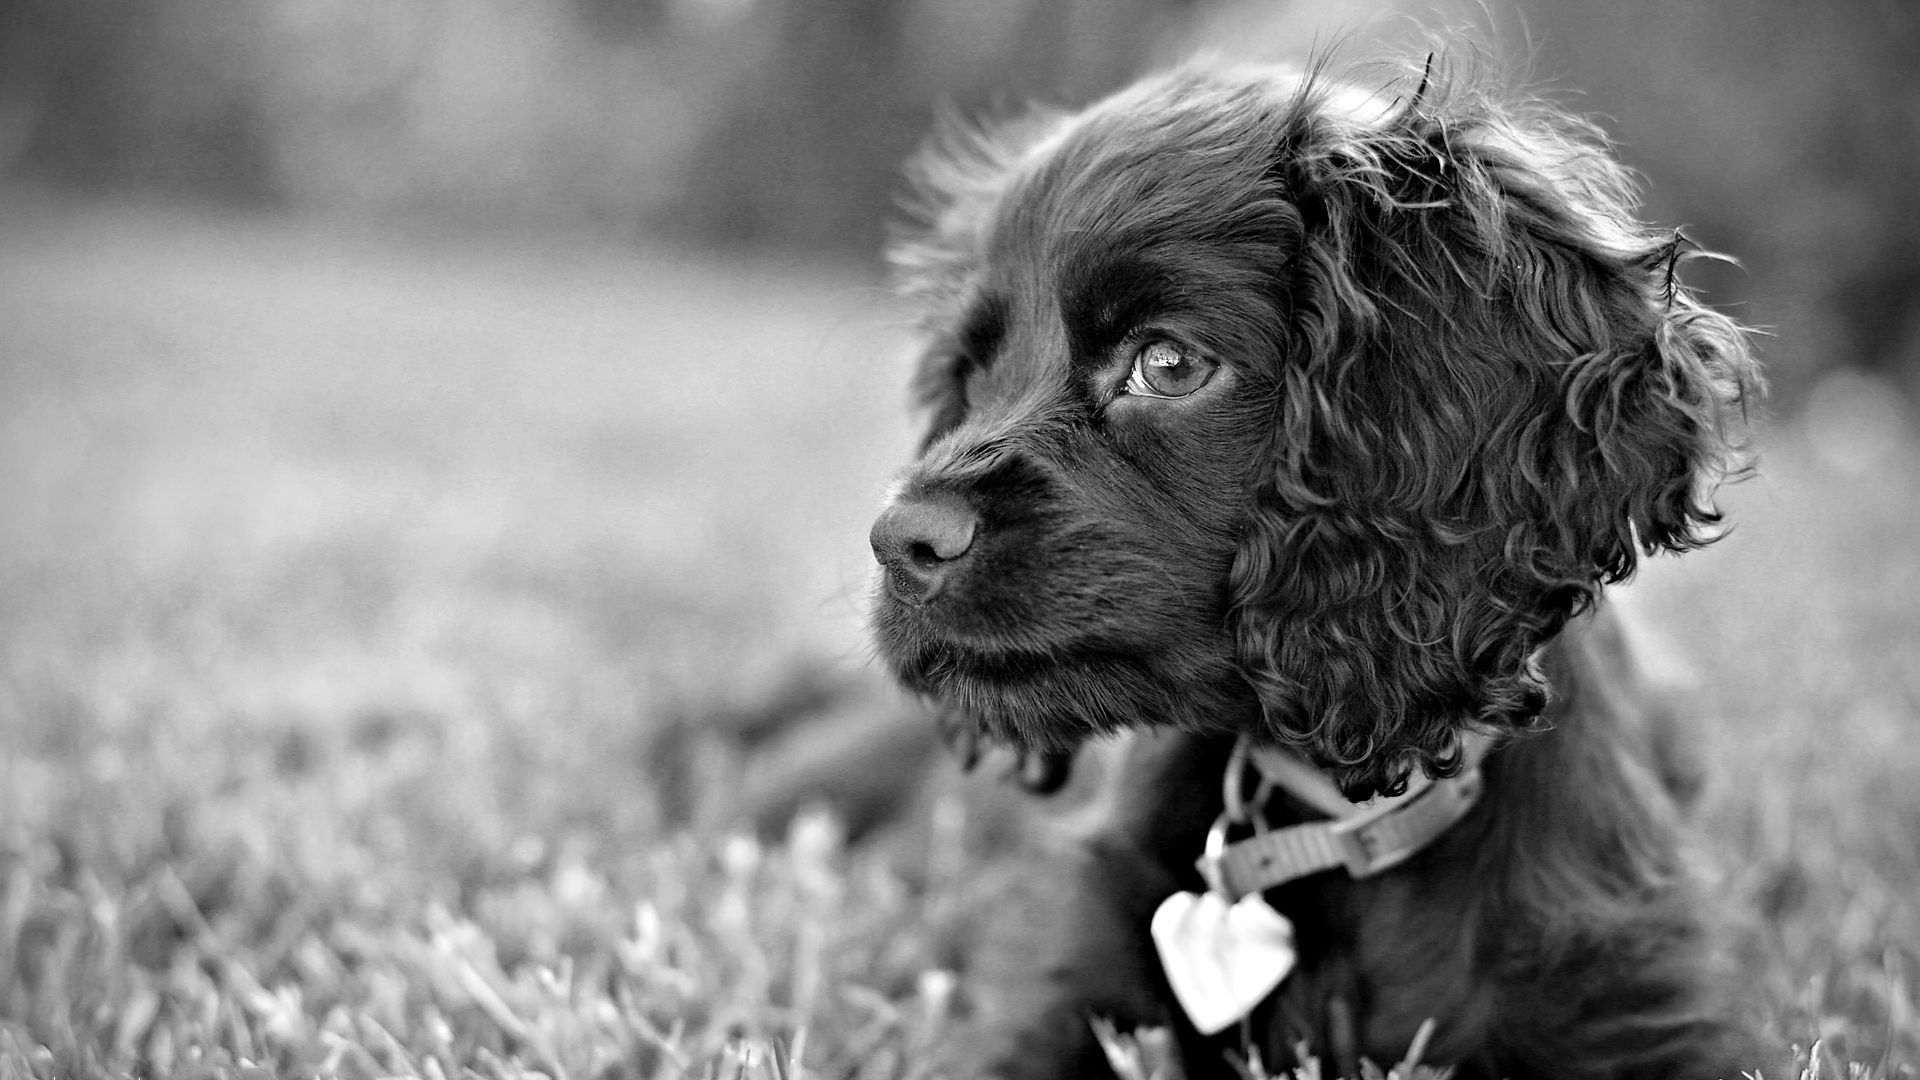 156189 download wallpaper Animals, Dog, Puppy, Grey screensavers and pictures for free